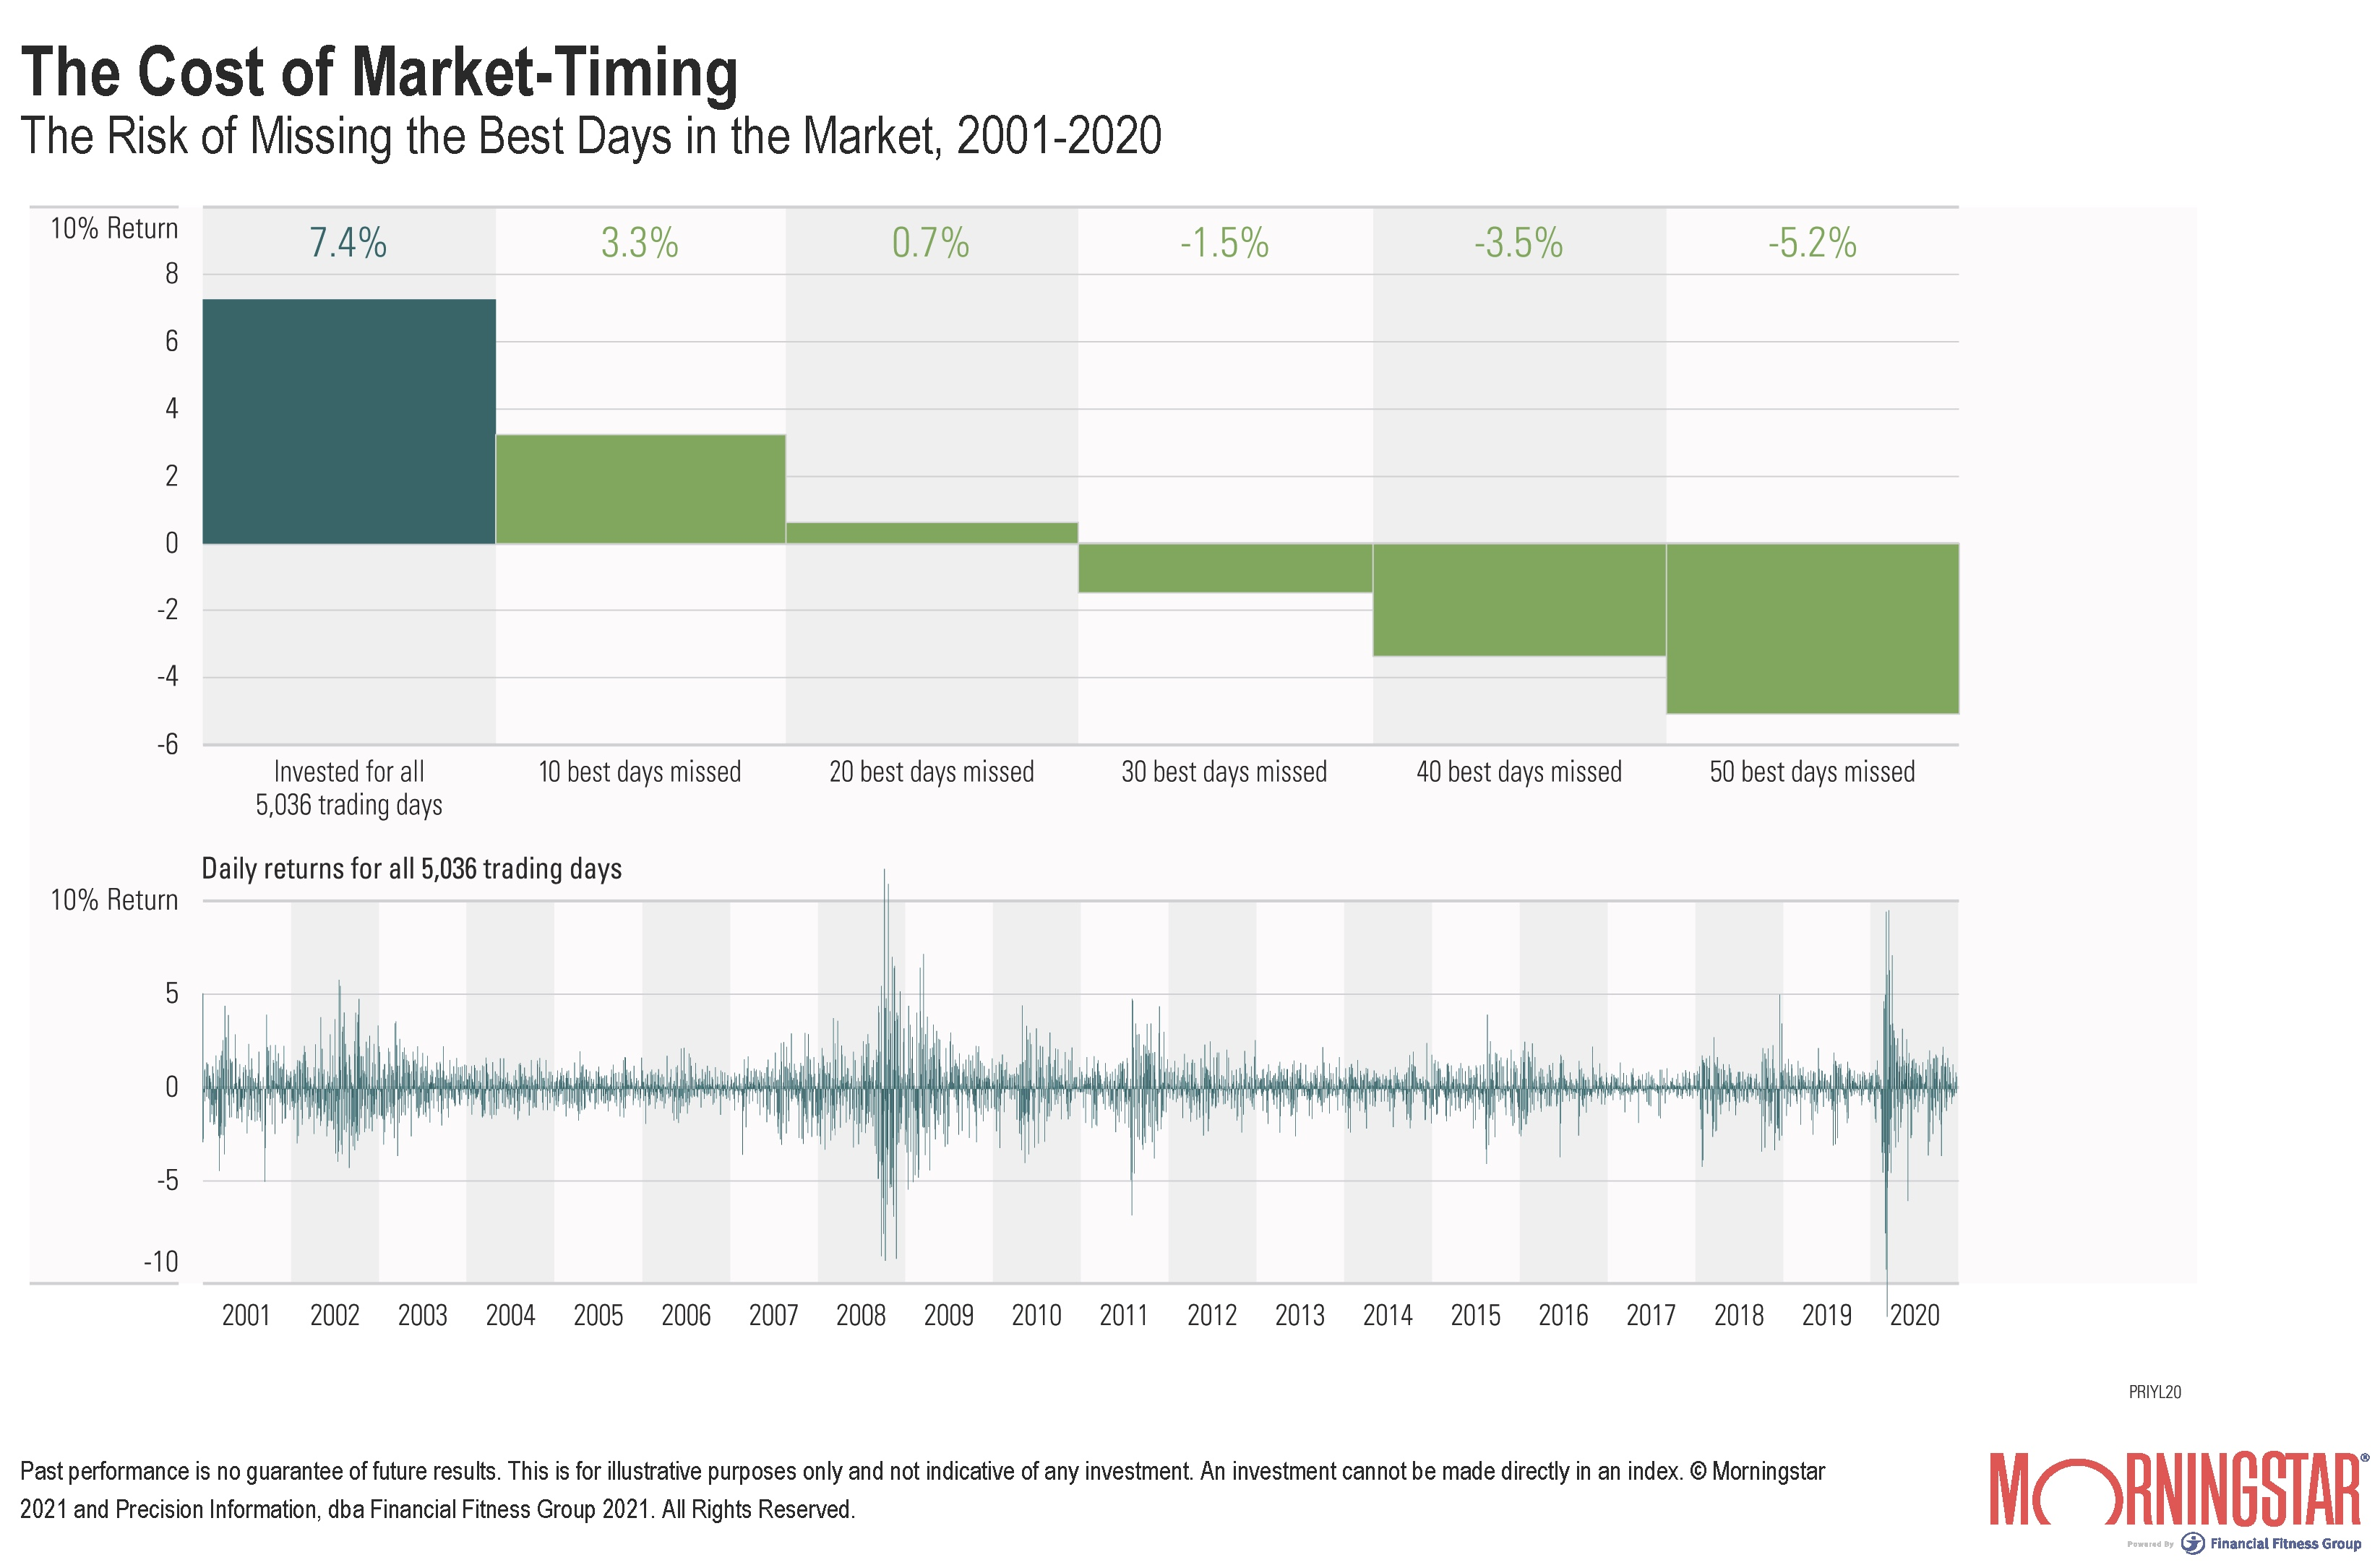 The cost of market timing